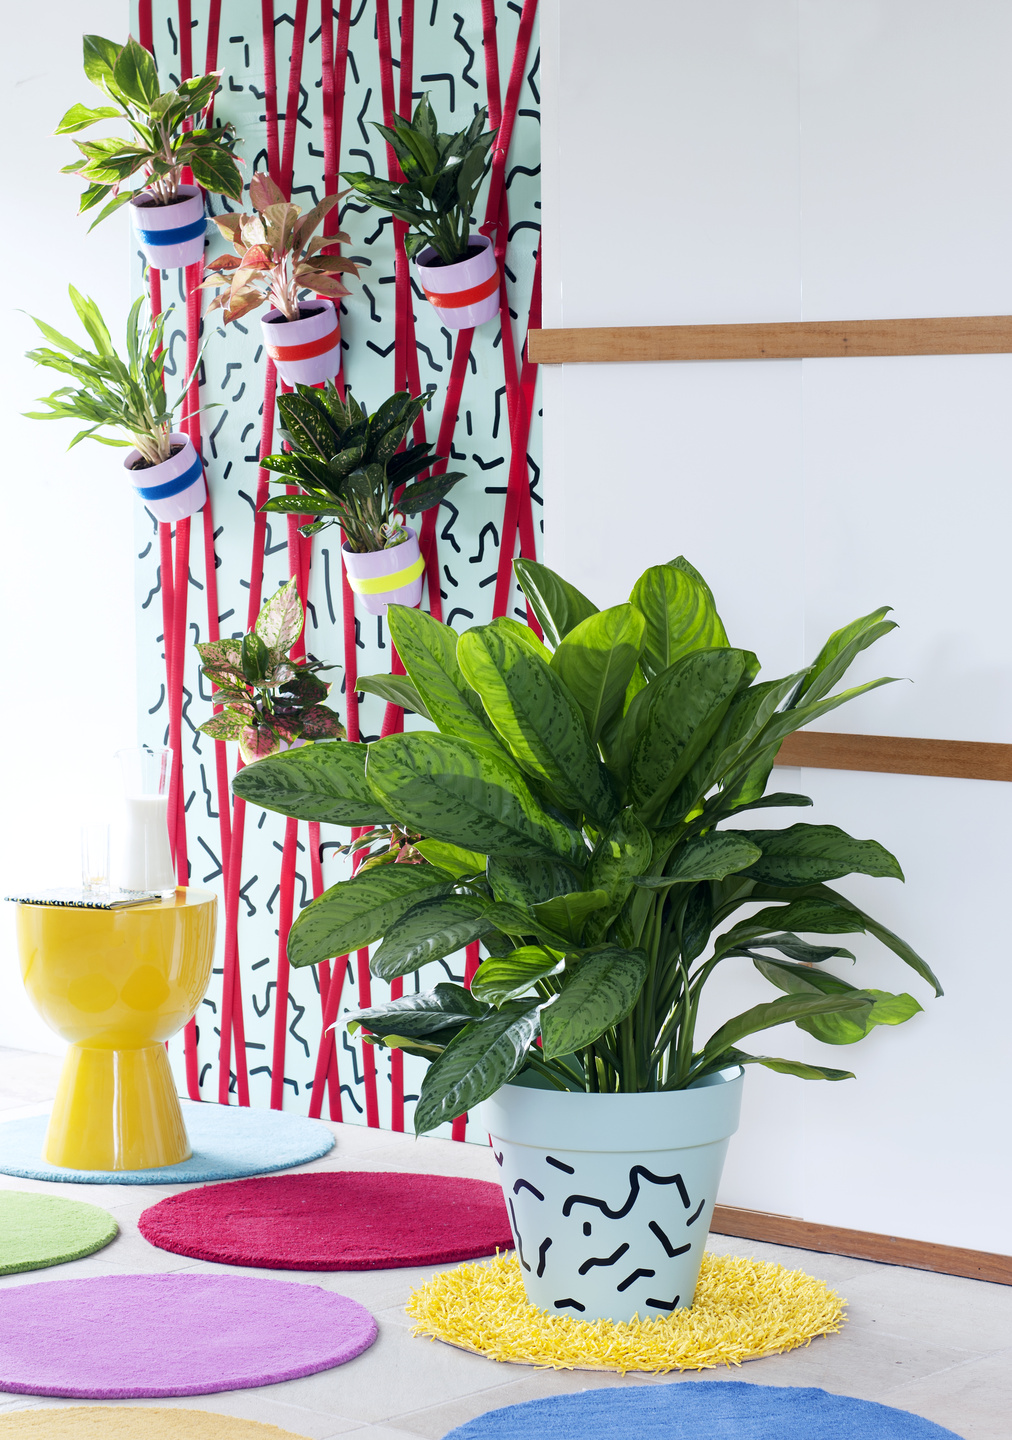 October 2016: Chinese Evergreen is Houseplant of the month ... on chinese evergreen watering, red chinese evergreen plant, chinese evergreen leaf, japanese evergreen plant, snake plant, chinese evergreen bamboo, chinese money plant, chinese evergreen seeds, chinese evergreen crete, chinese evergreen tree, chinese evergreen indoor plant, chinese potted plant, chinese fan palm california, wandering jew plant, english ivy plant, chinese evergreen aglaonema, chinese evergreen flower, chinese evergreen leaves turning yellow, chinese flowers and plants,